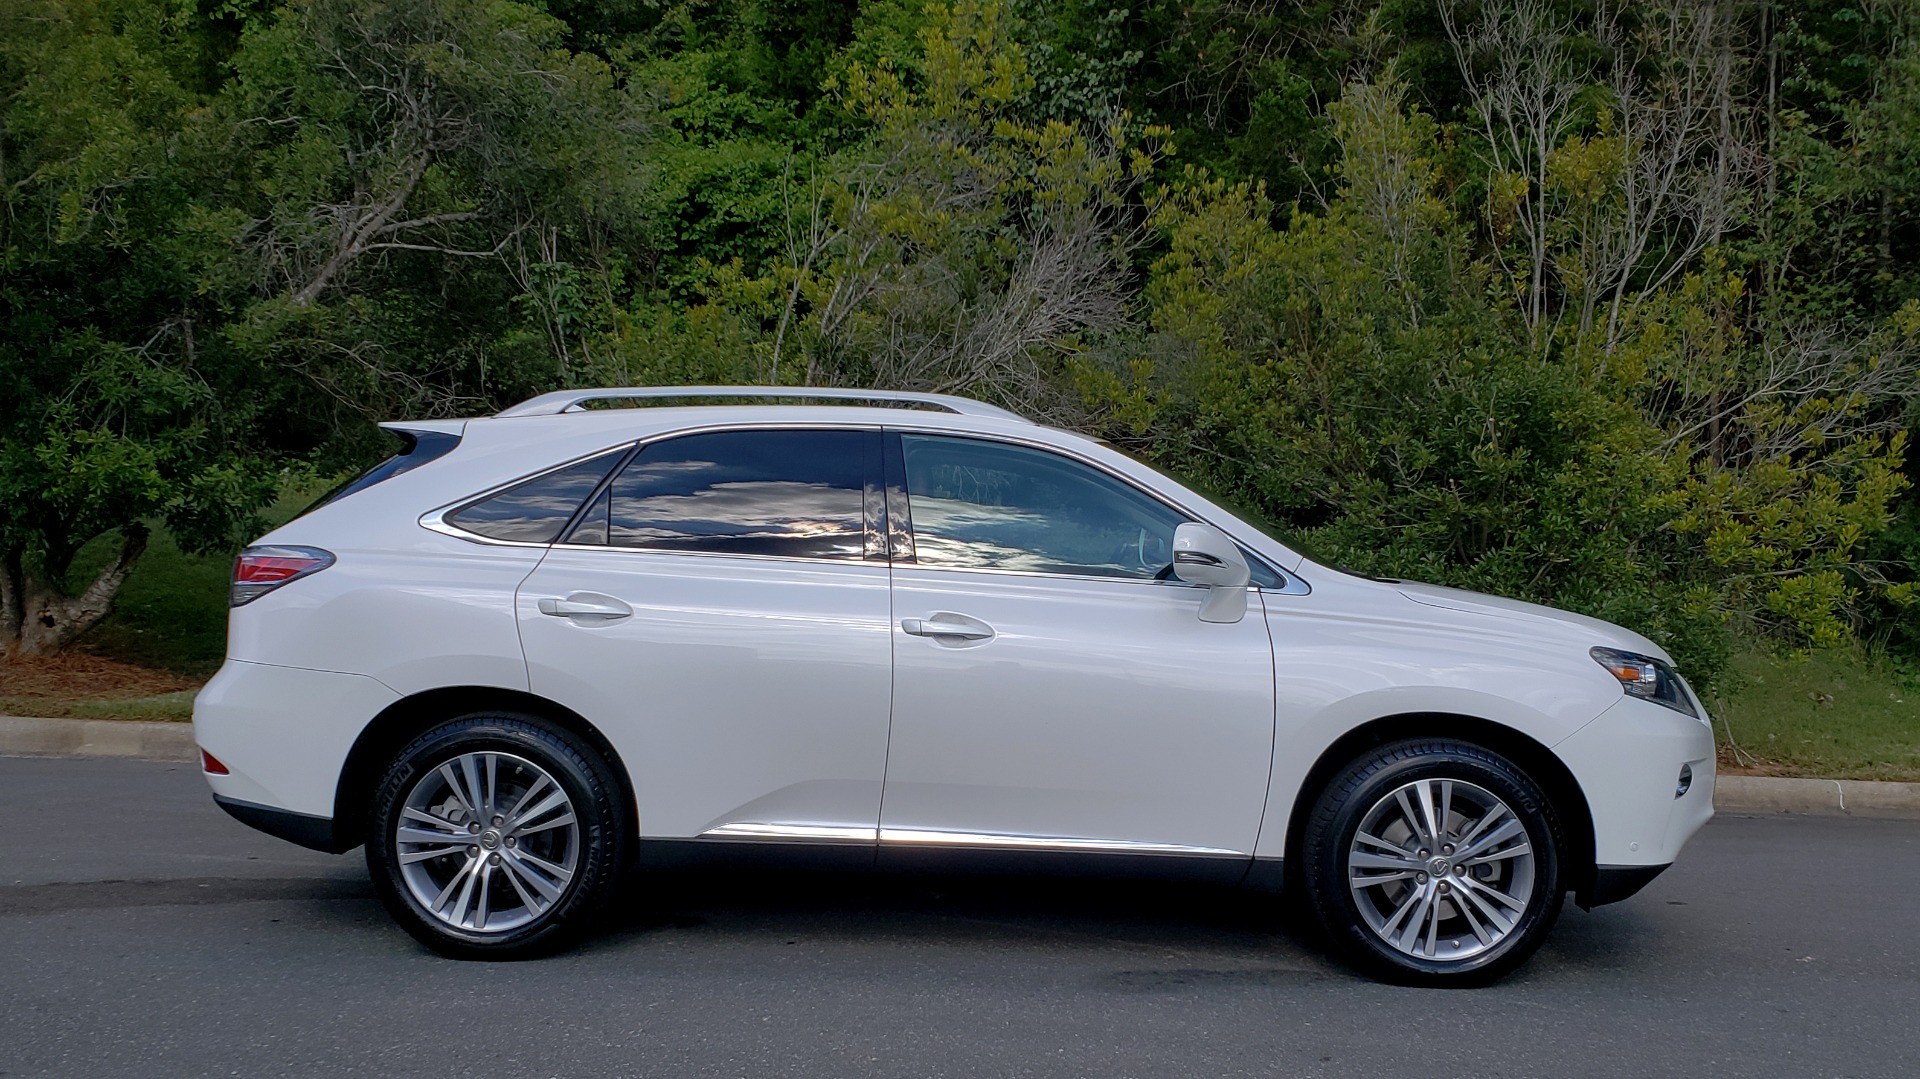 Used 2015 Lexus RX 350 PREMIUM PKG / COMFORT PKG / NAV / SUNROOF / BSM / TOWING for sale Sold at Formula Imports in Charlotte NC 28227 6